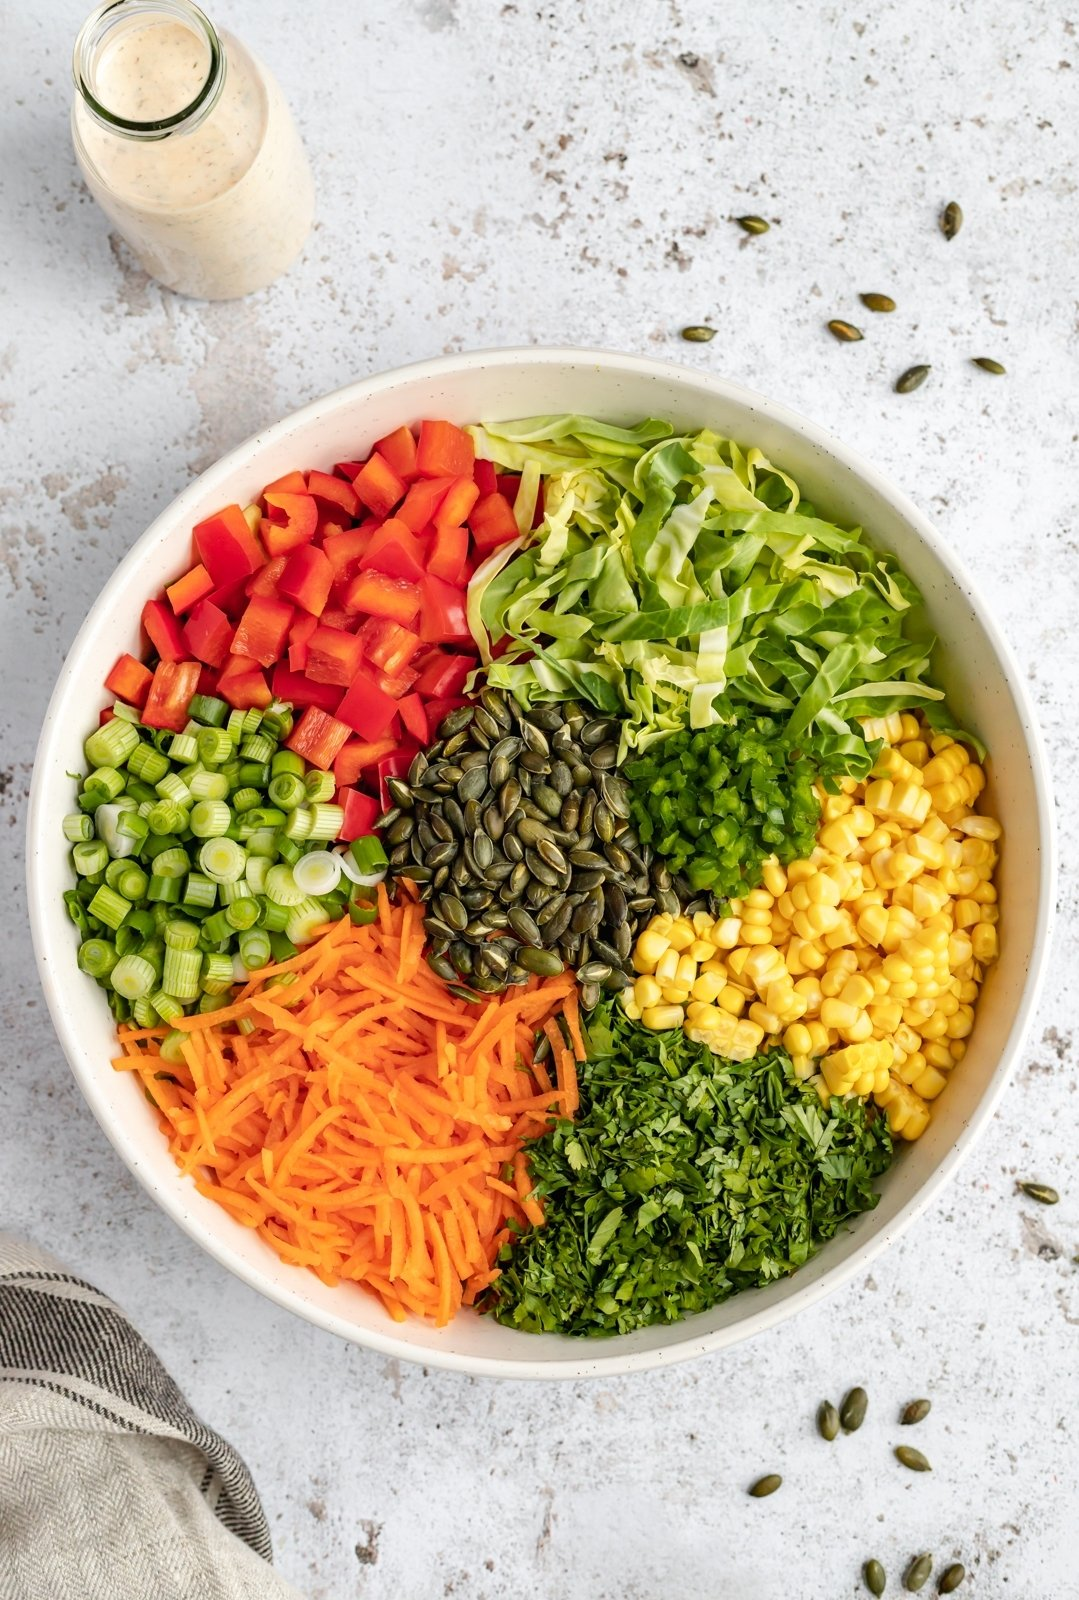 ingredients for healthy chopped chicken salad in a bowl